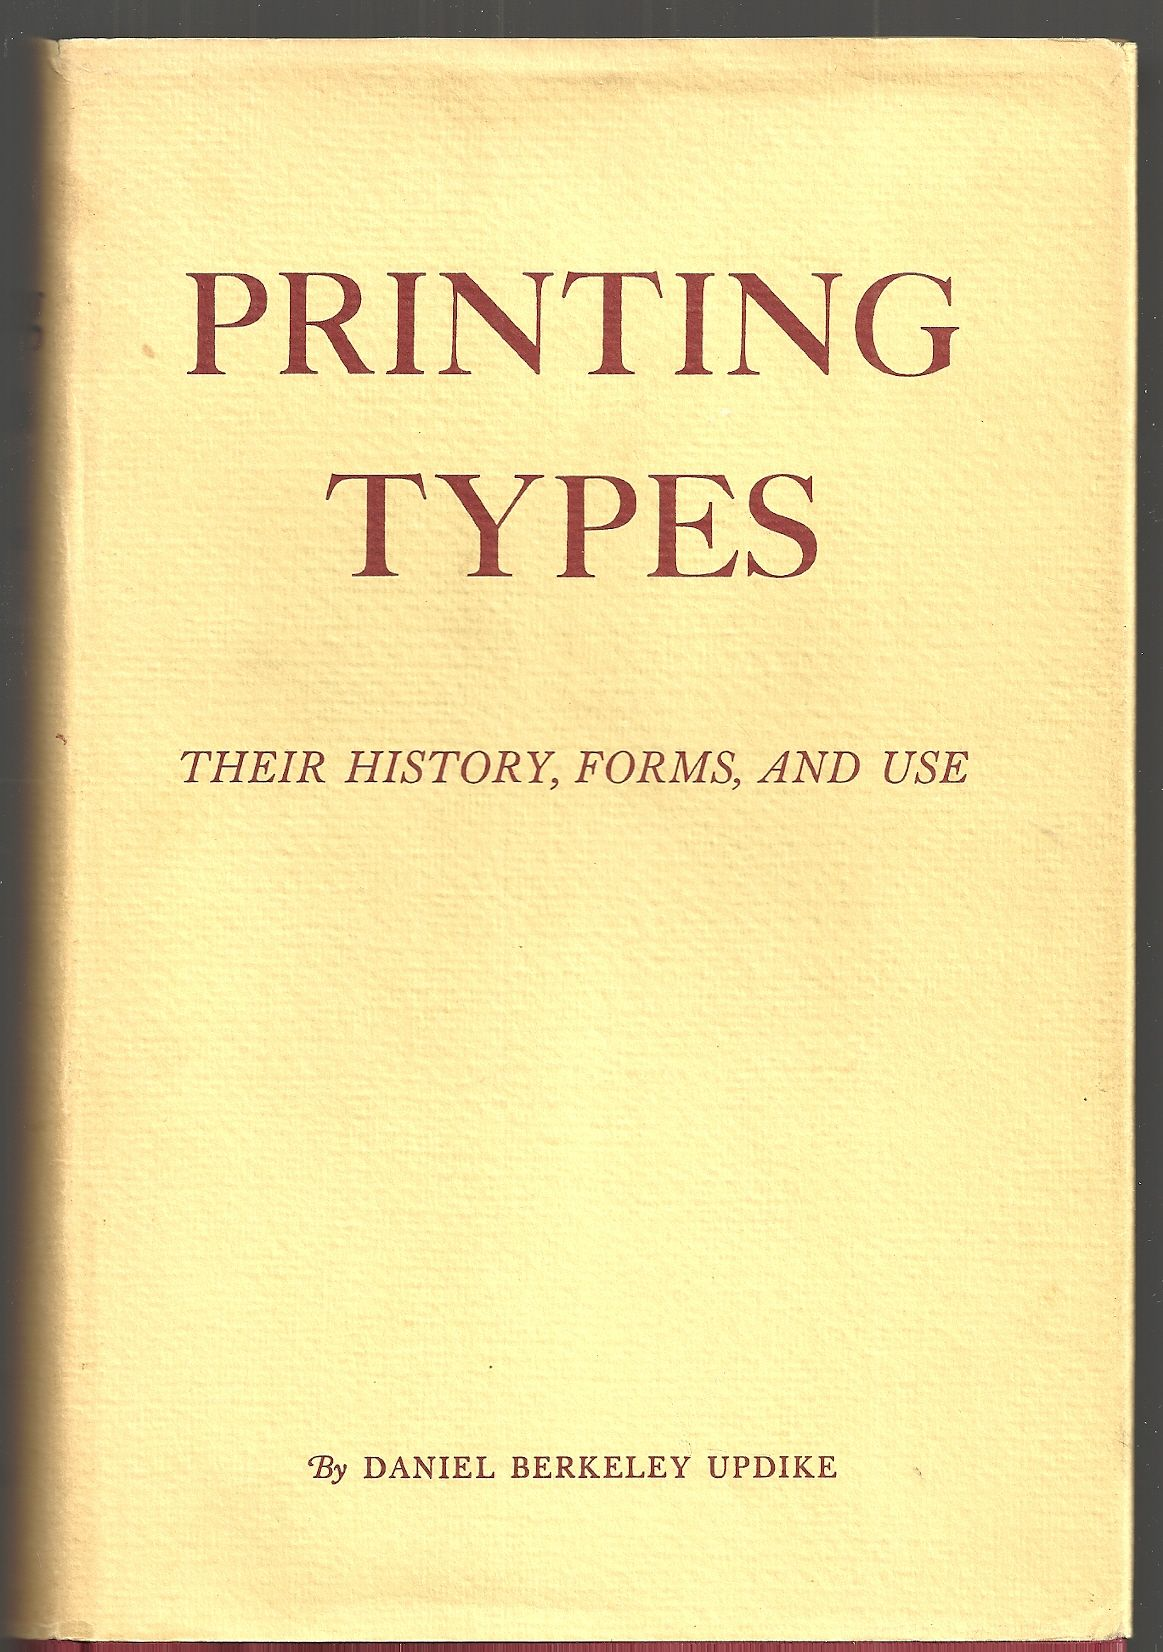 Printing Types: Their History, Forms, and Use- A Study in Survivals, Vol. 2, Daniel Berkeley Updike